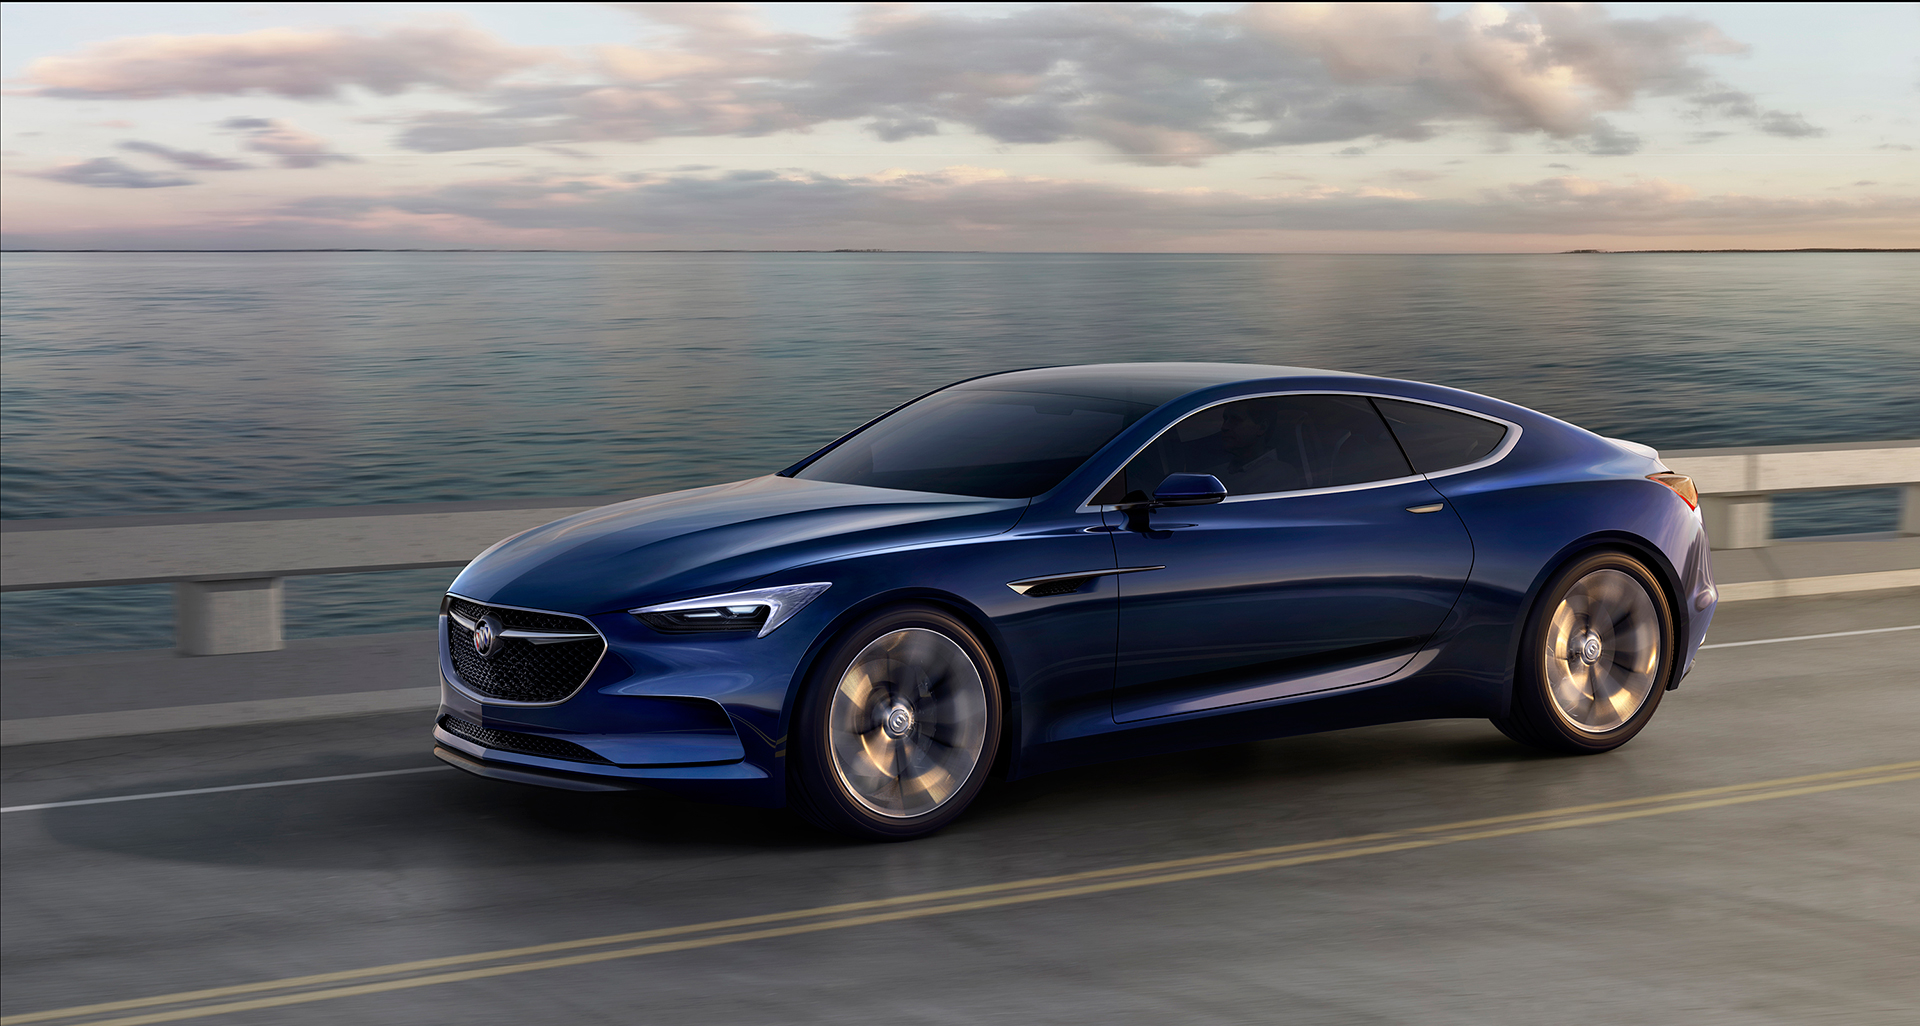 Buick Avista concept - 2016 - front side-face / profil avant - General Motors